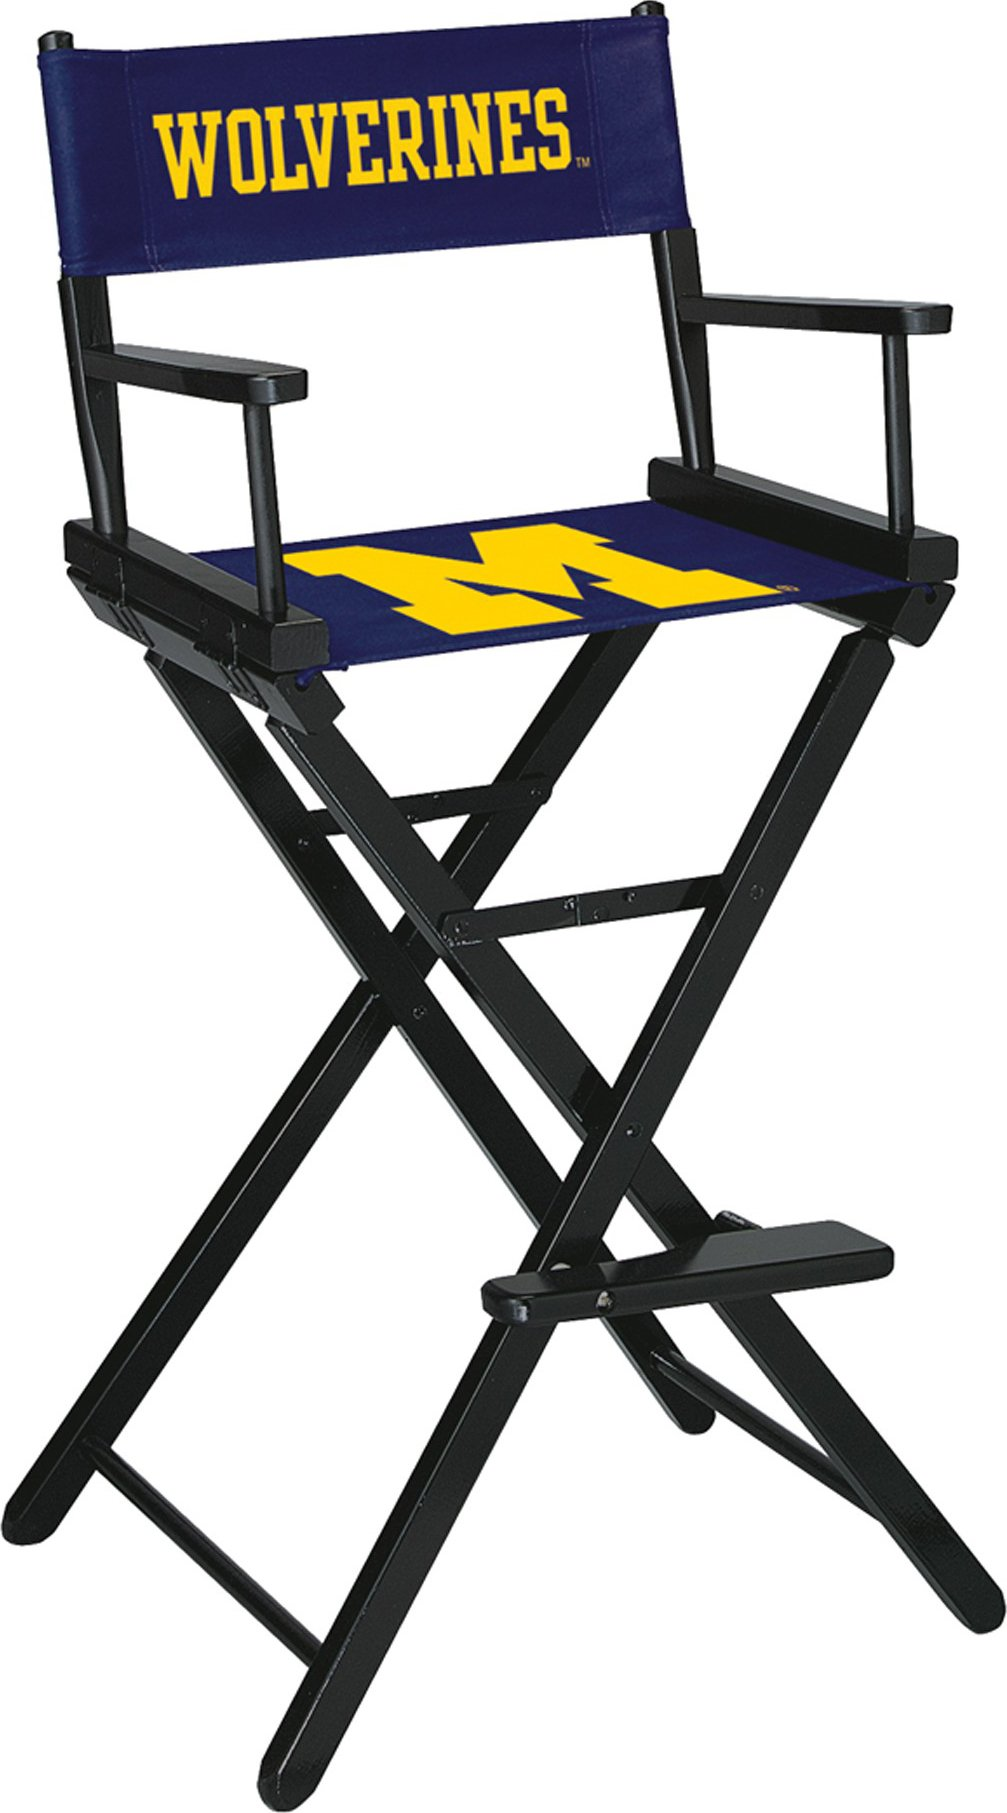 Imperial Officially Licensed NCAA Merchandise: Directors Chair (Tall, Bar Height), Michigan Wolverines